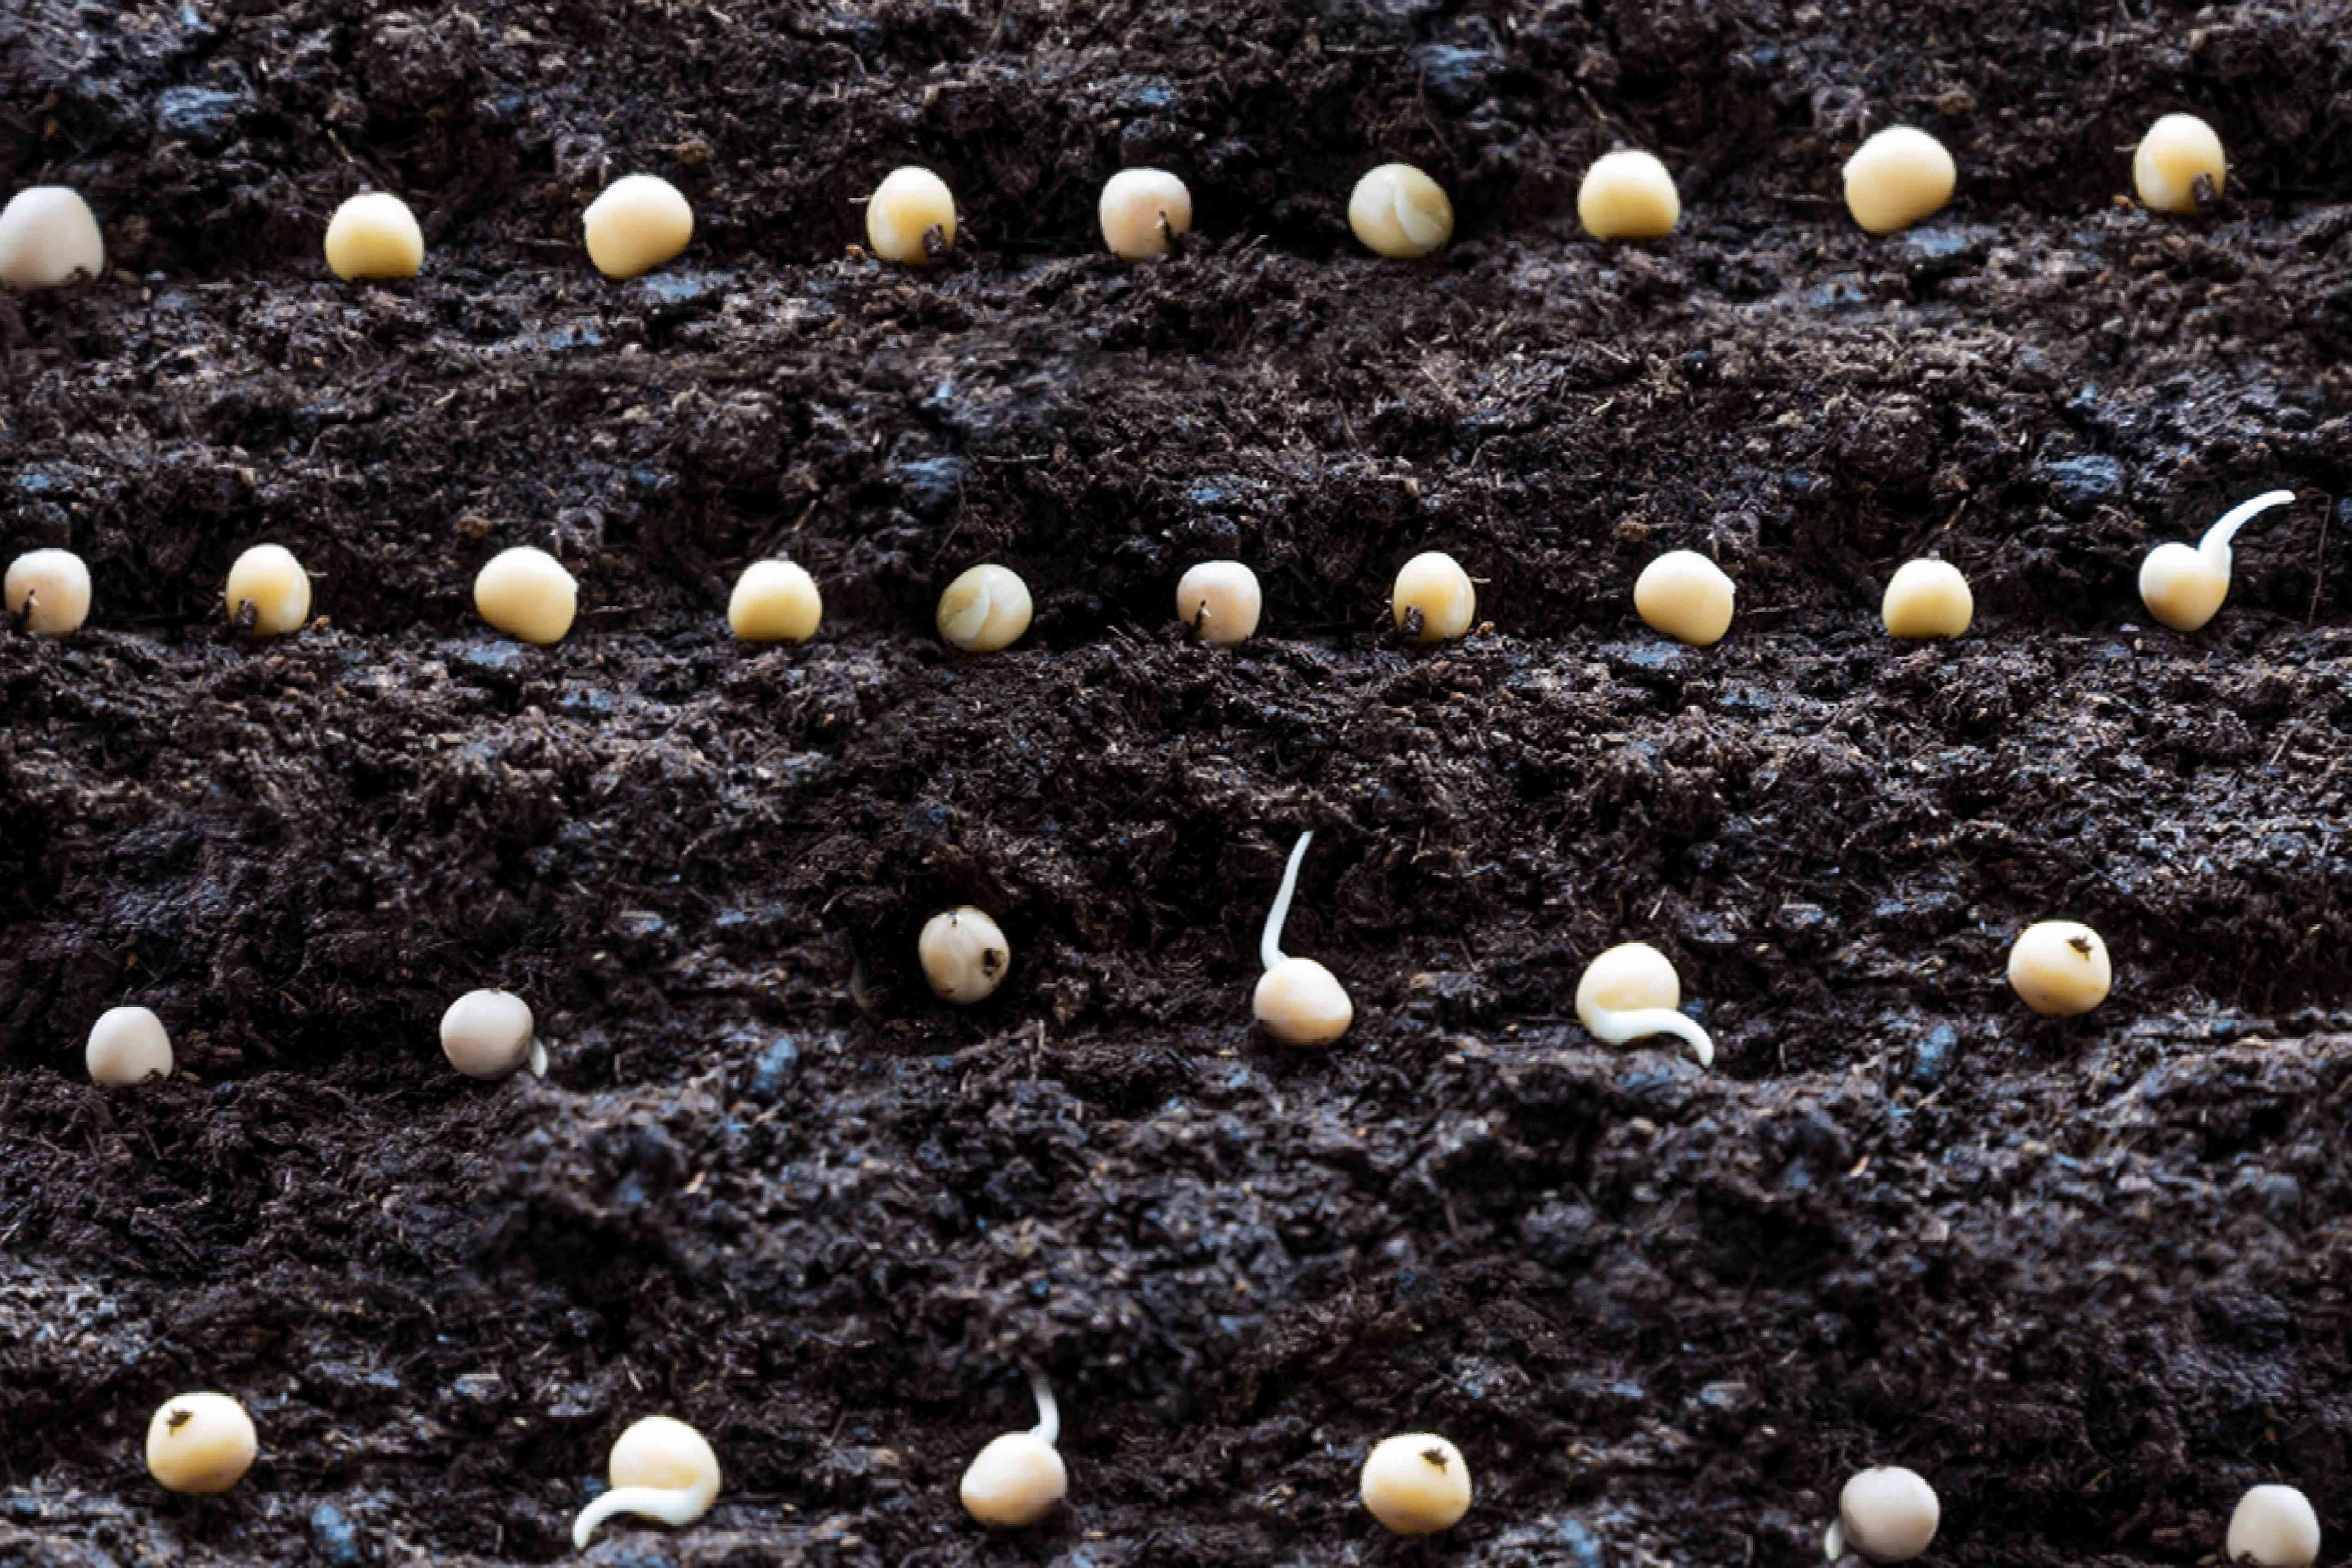 sowing and planting seeds